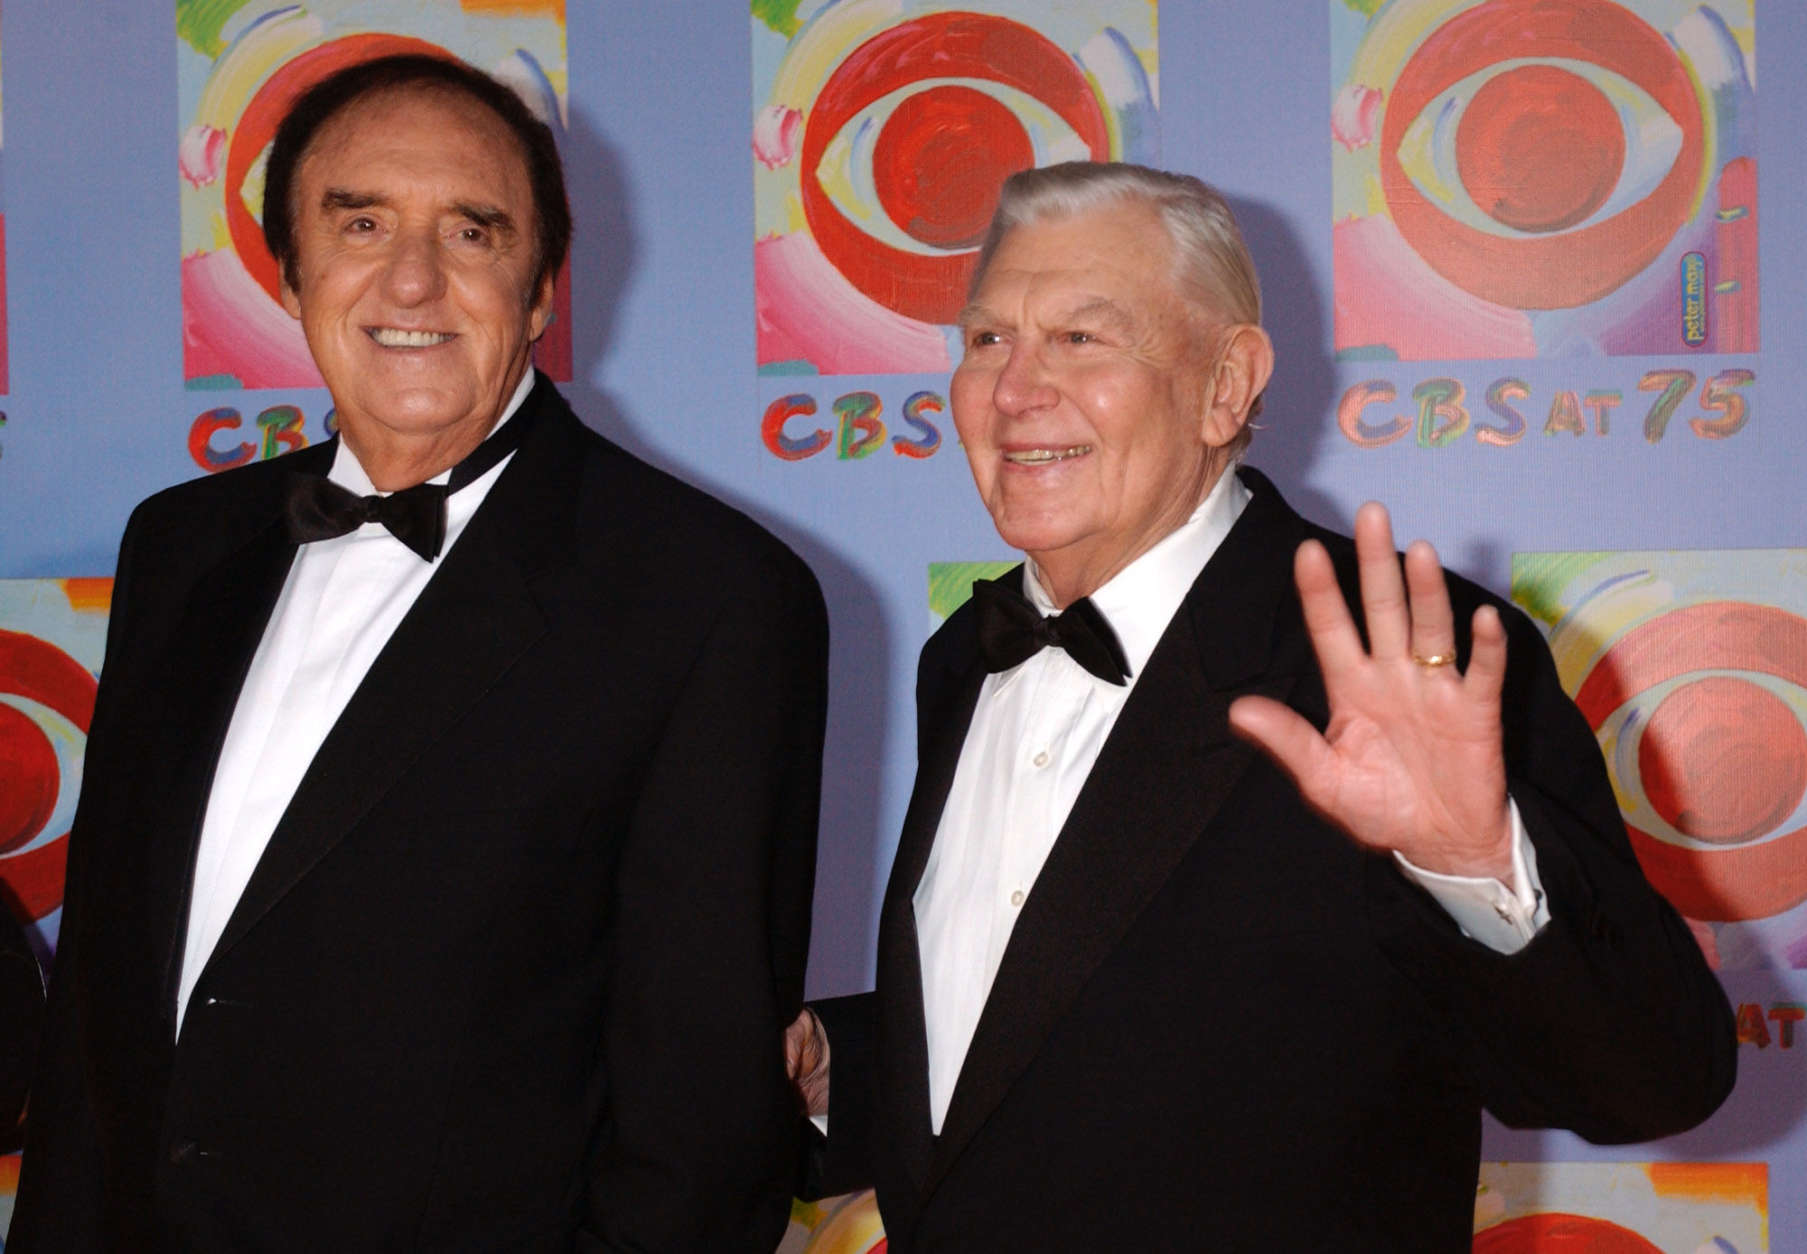 Actors Jim Nabors, left, and Andy Griffith arrive to CBS's 75th anniversary celebration Sunday, Nov. 2, 2003, in New York.  (AP Photo/Louis Lanzano)